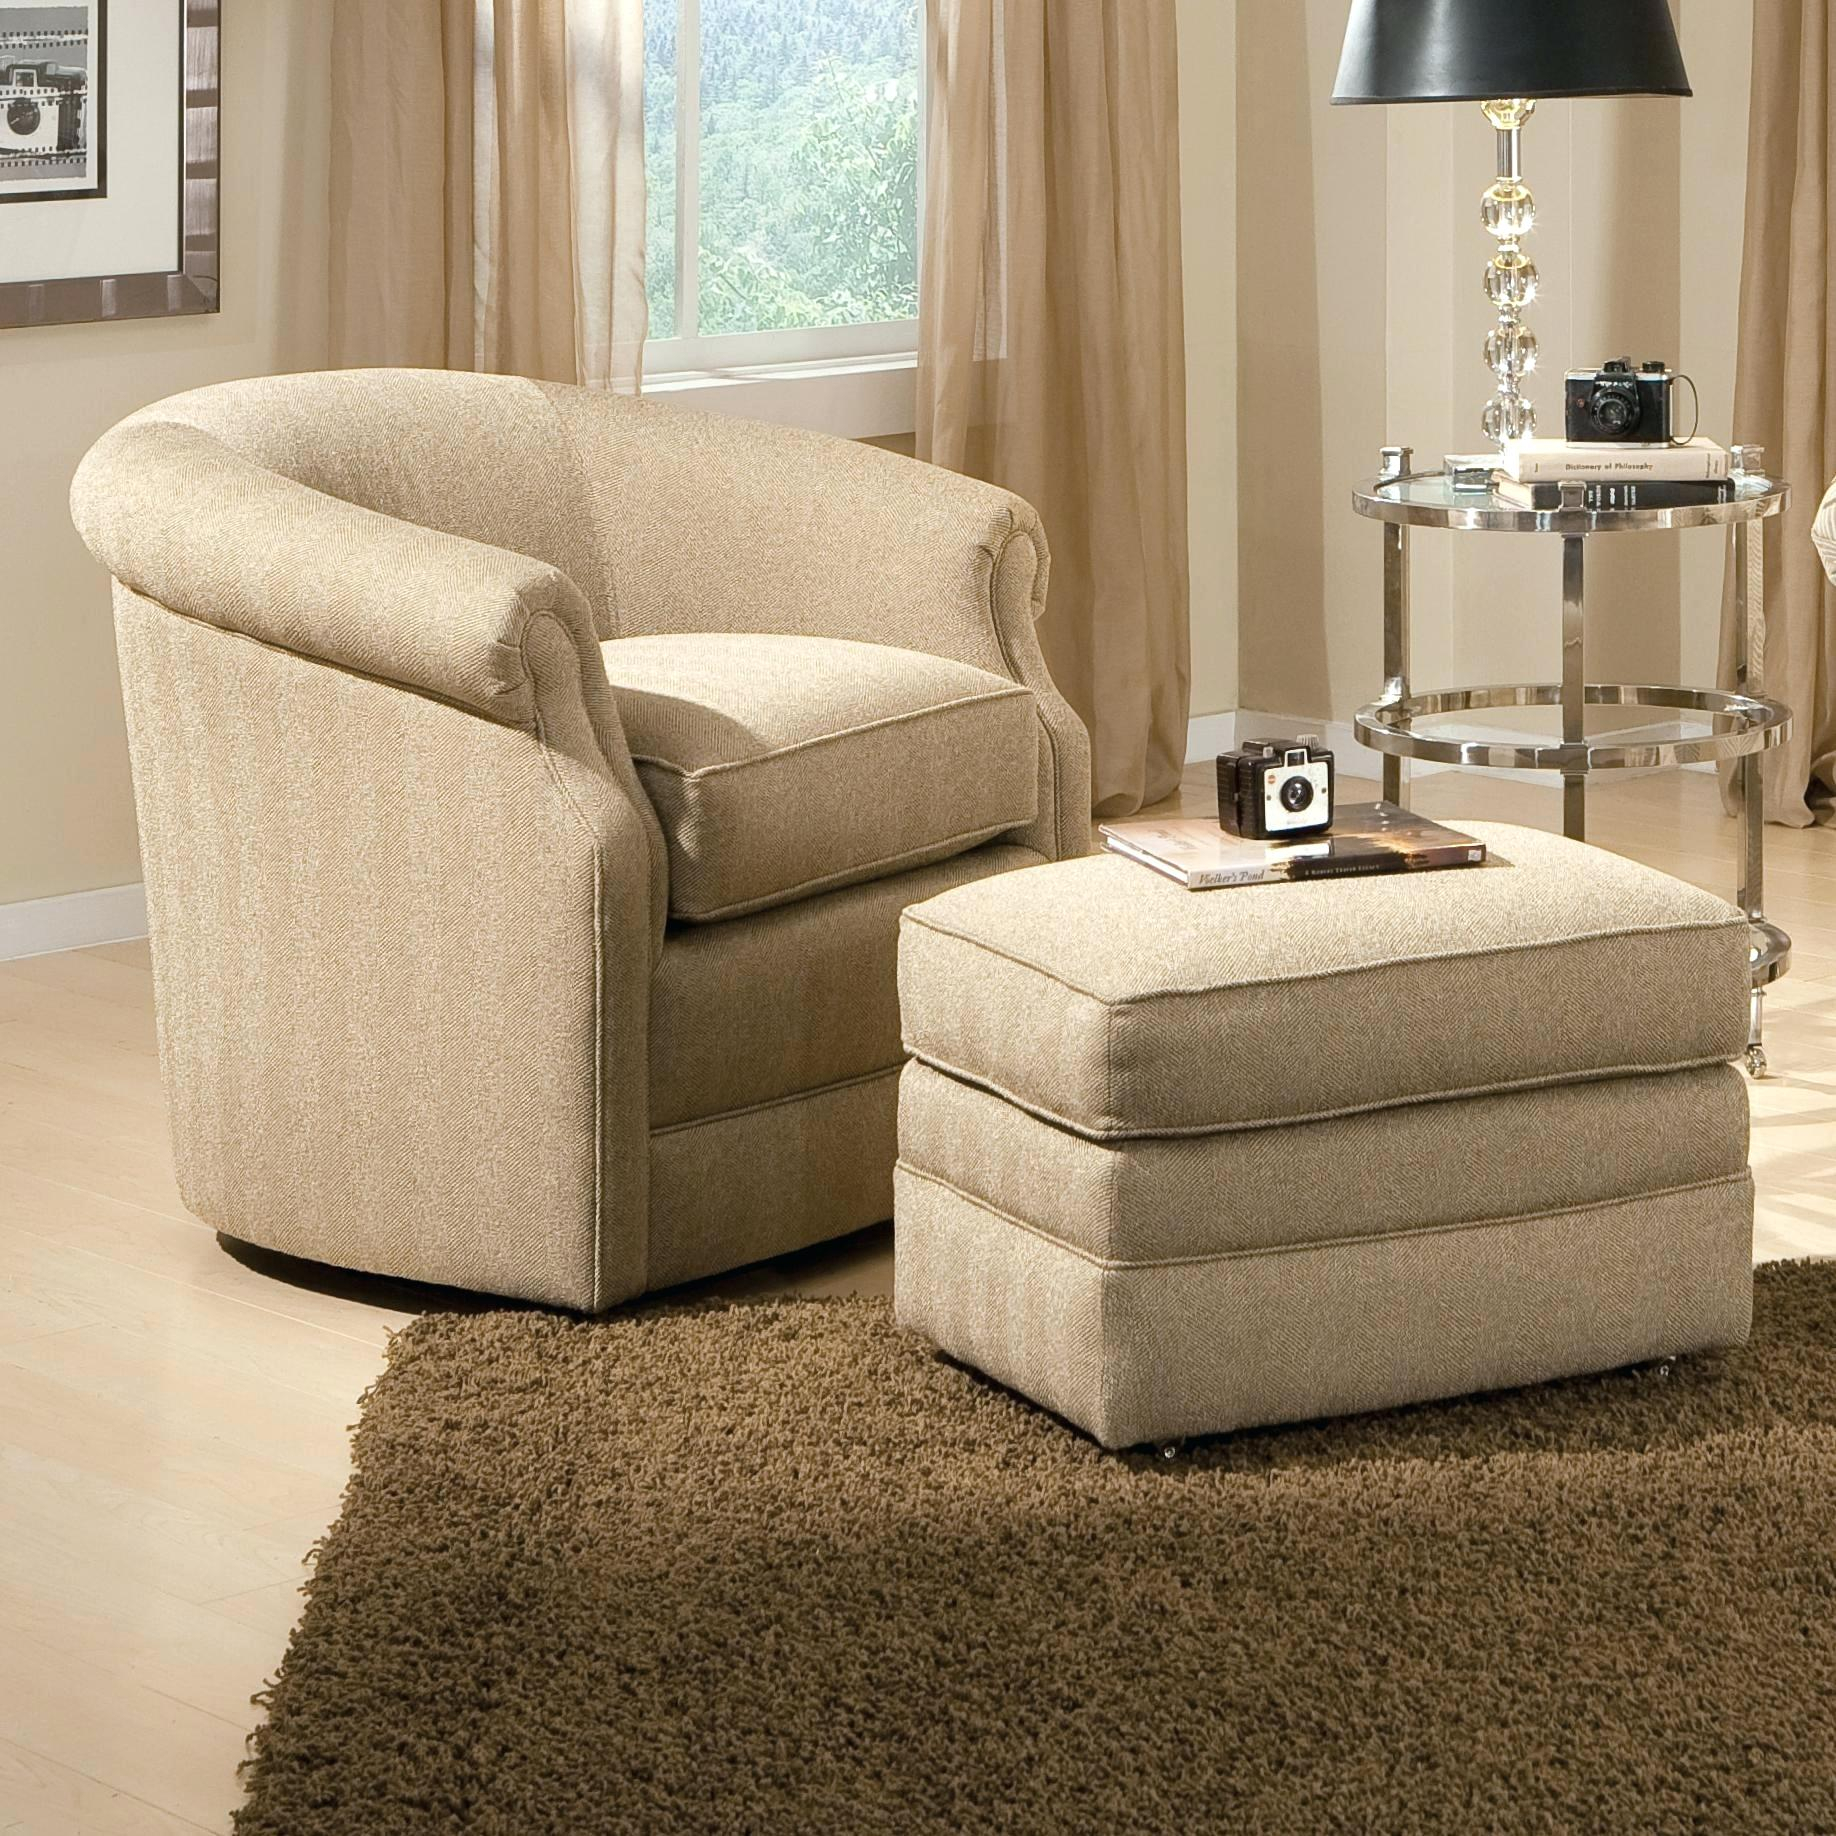 Image of: Oversized Living Room Chairs Round Oversized Living Room Chair Layjao